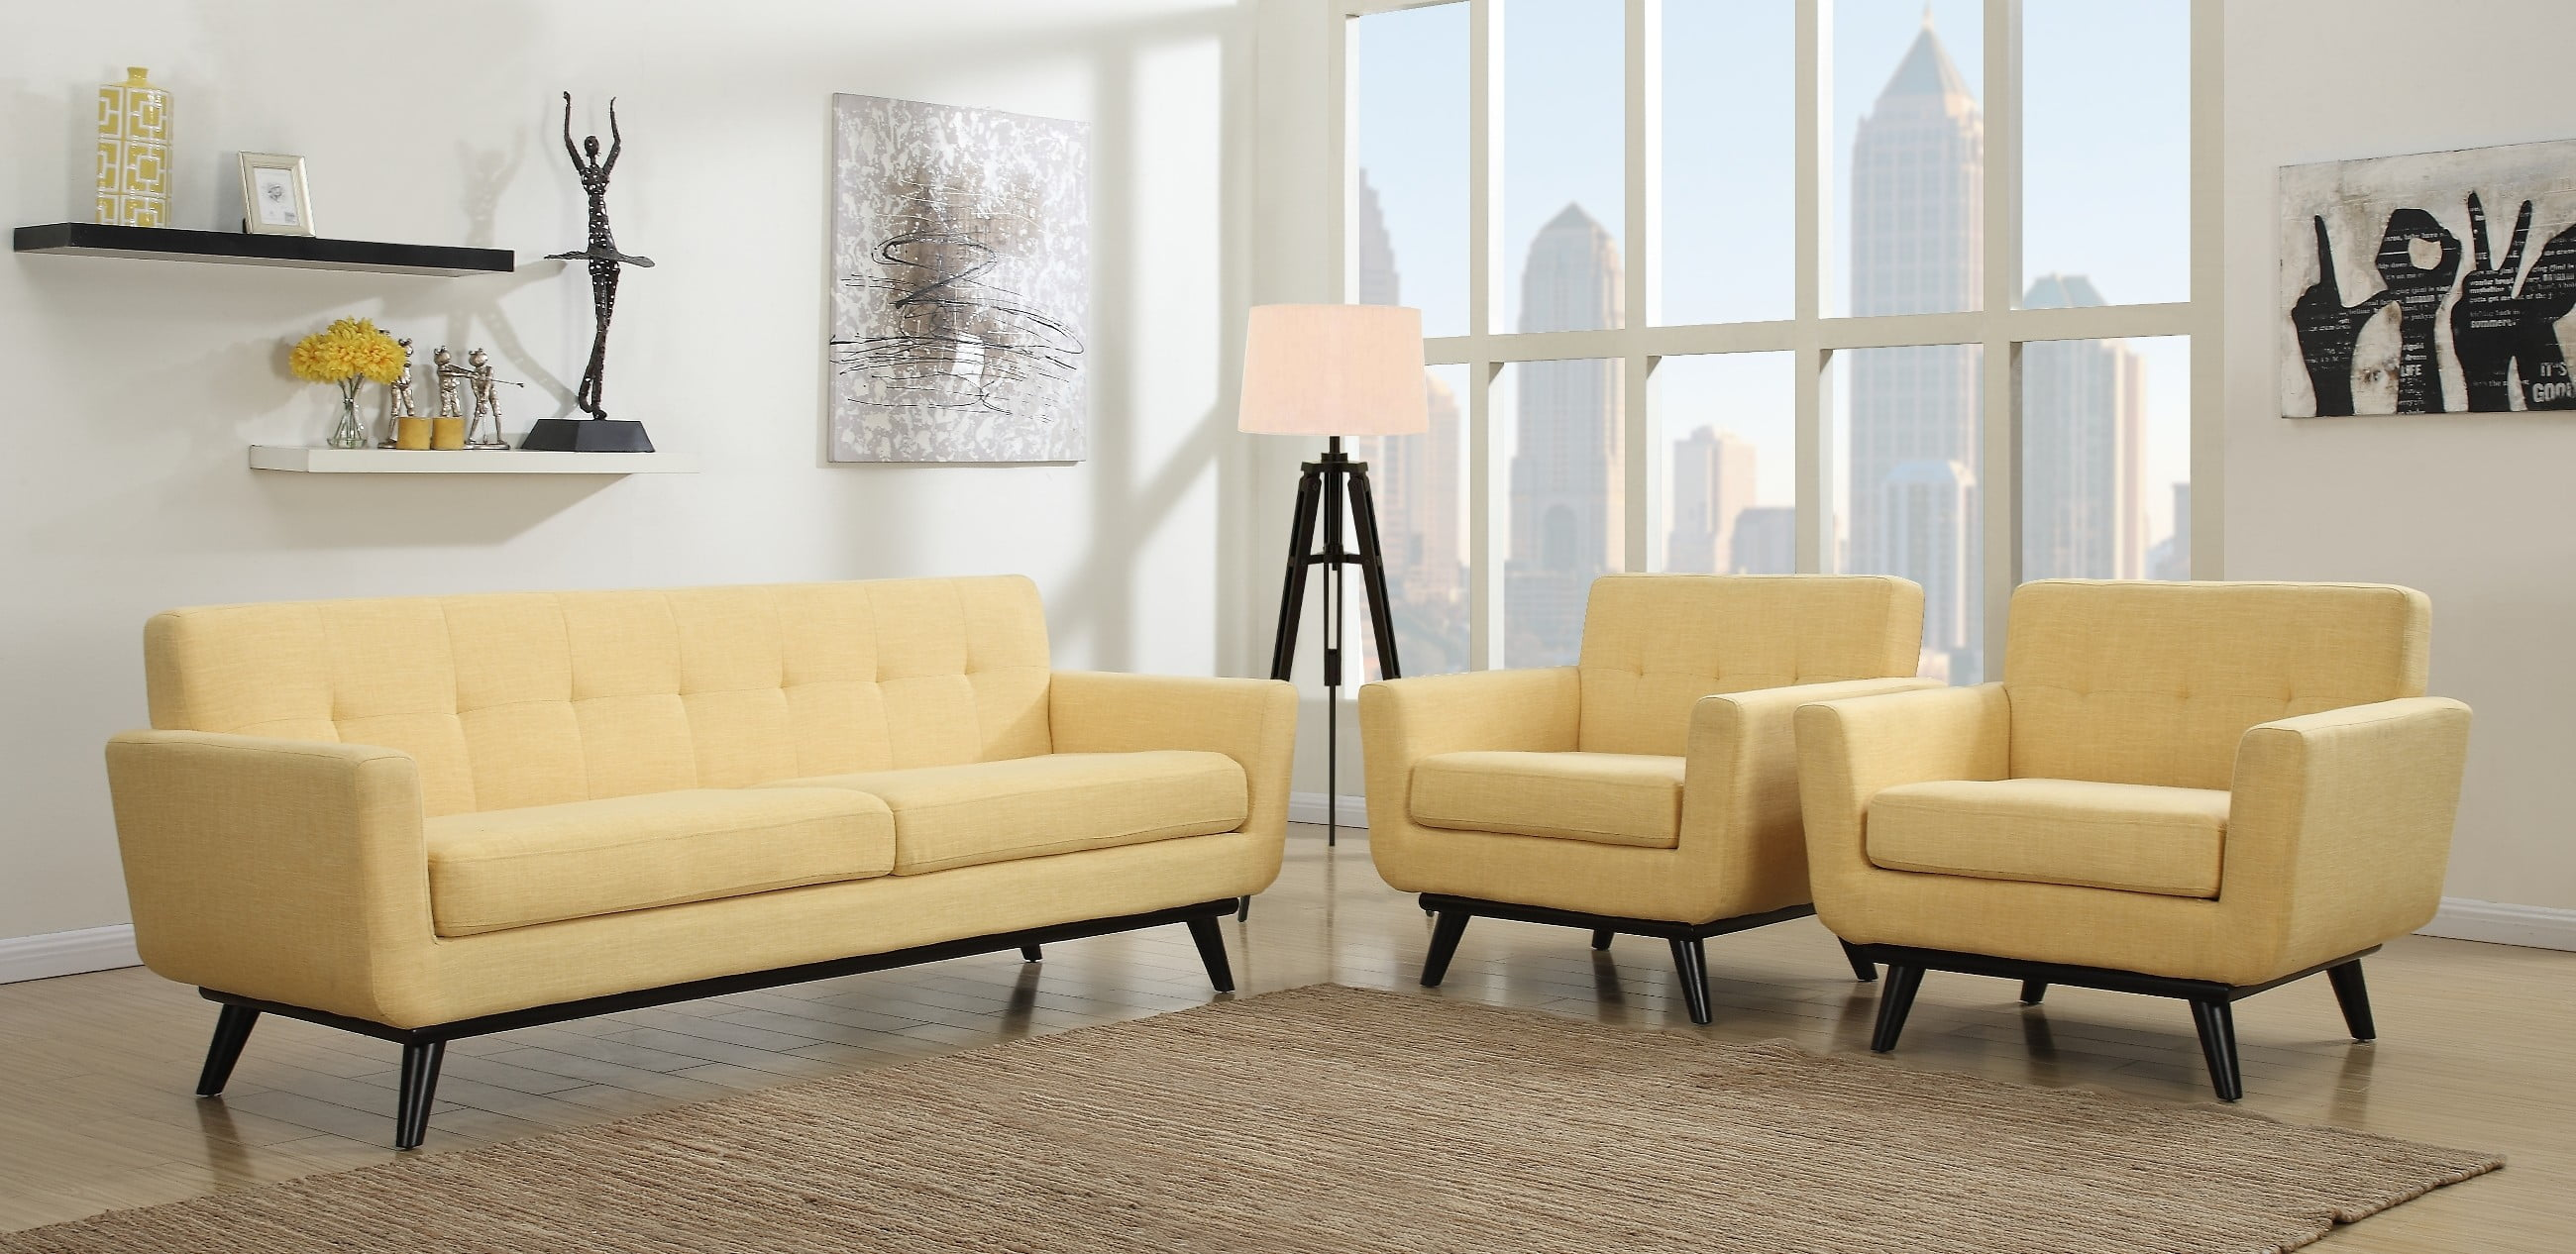 James mustard yellow linen sofa from tov tov s20s y coleman furniture